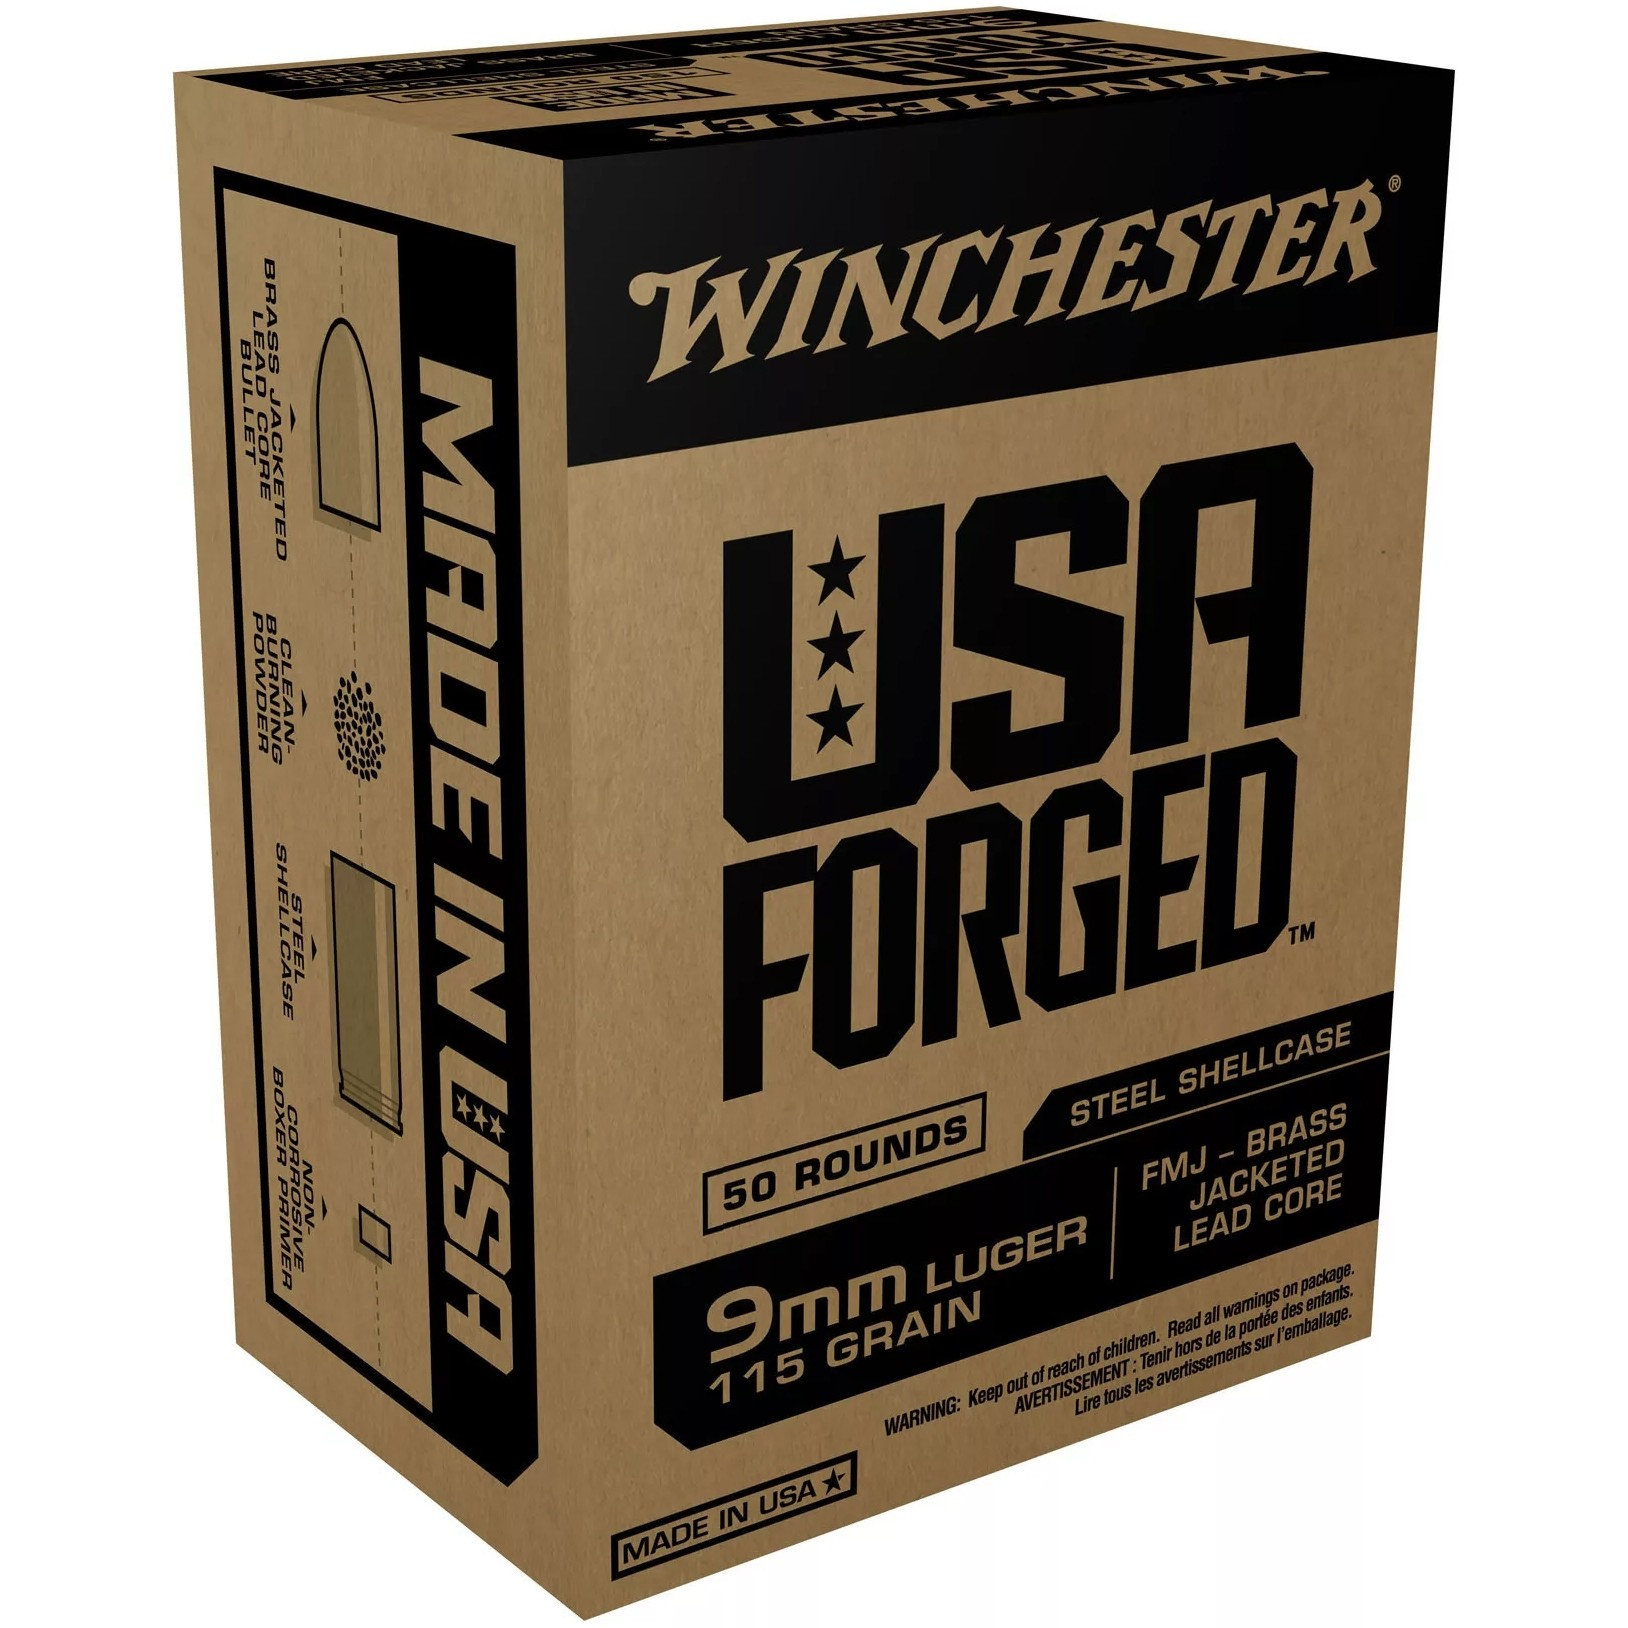 Winchester USA Forged 9mm Luger 50rd Ammo